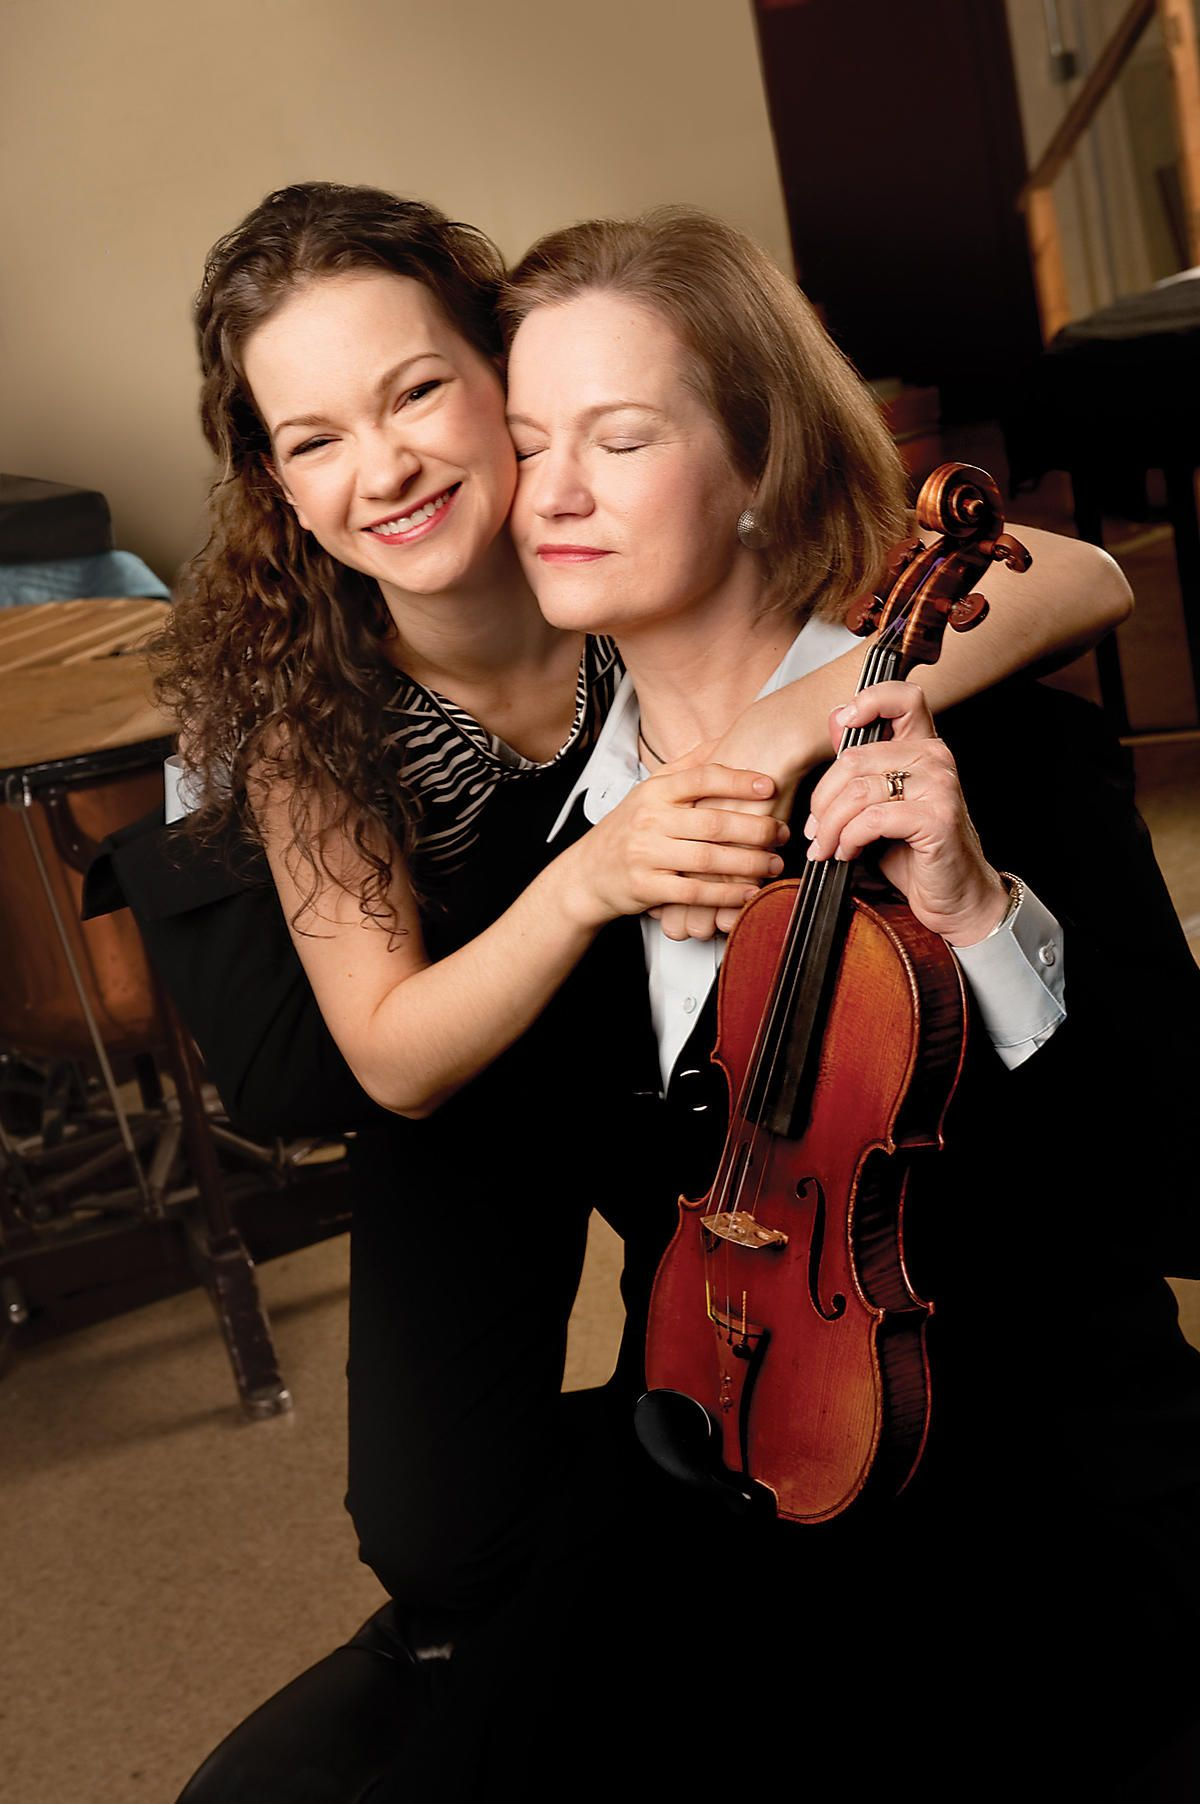 Hilary Hahn and her mom Anne | classical music | Pinterest Hilary Hahn